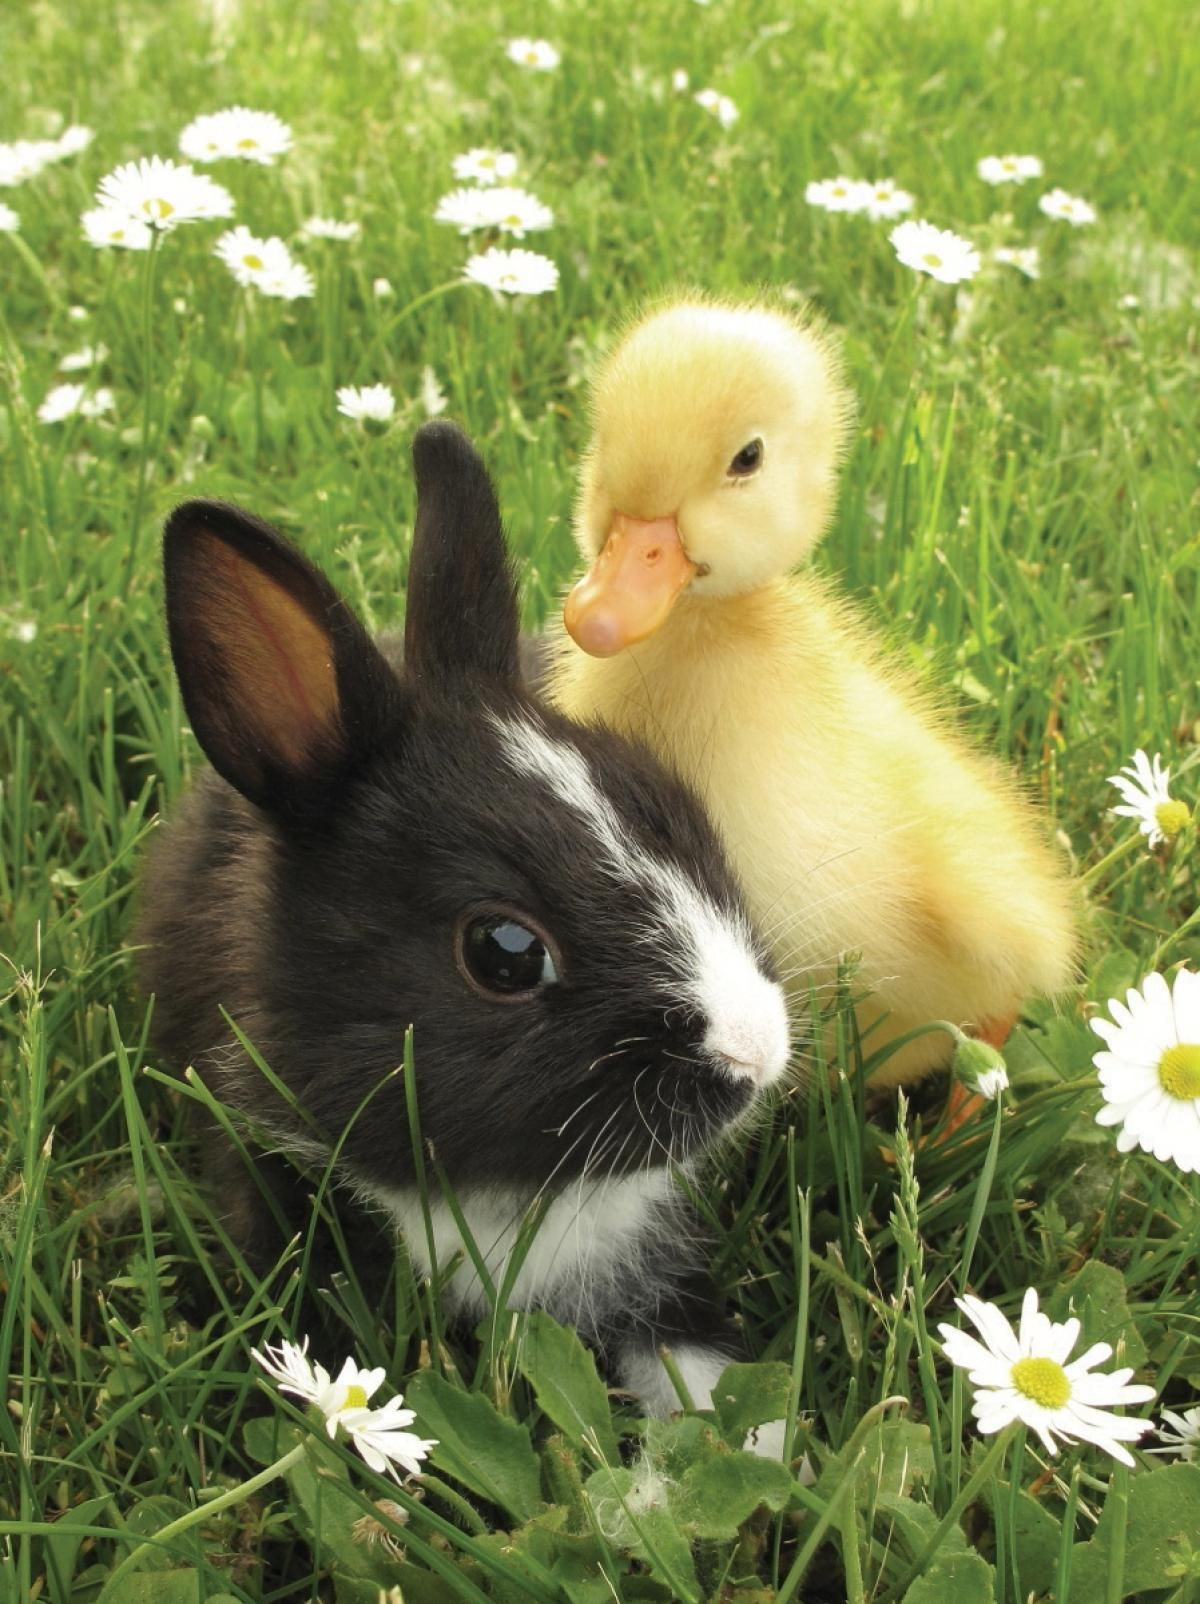 Bunny And Duckling